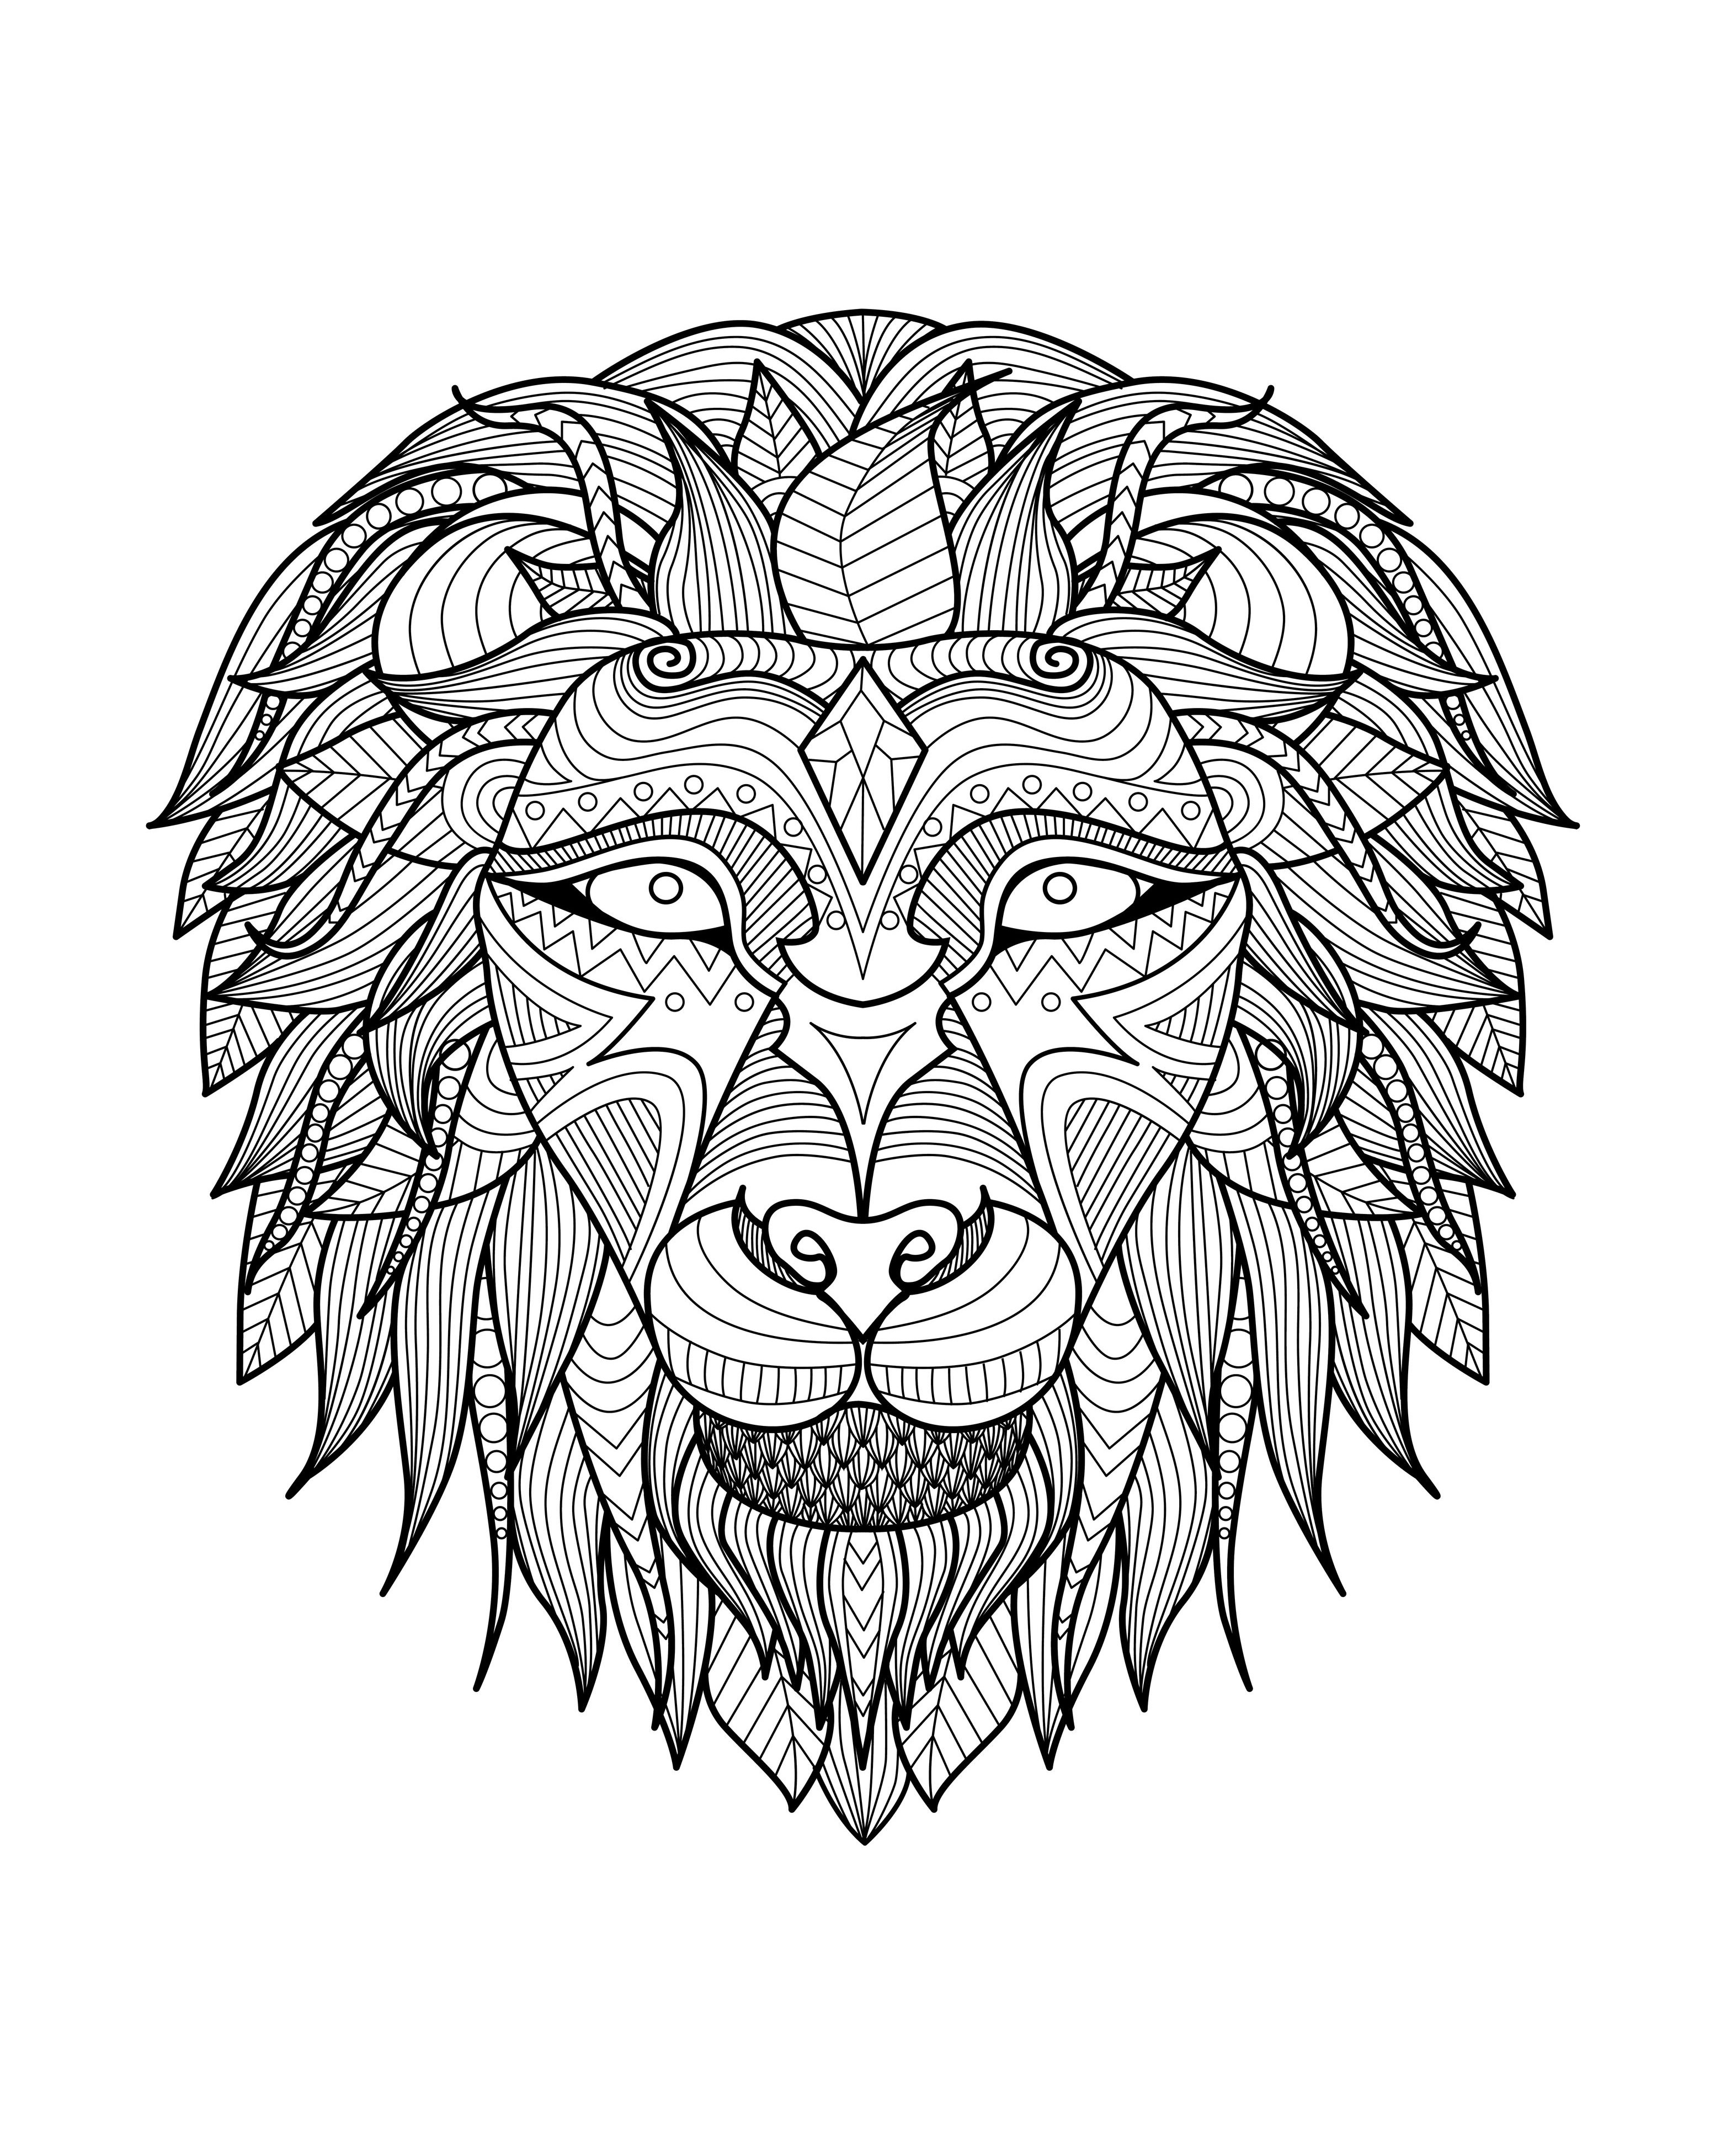 hard lion coloring pages really hard difficult color by number for adults coloring hard pages coloring lion